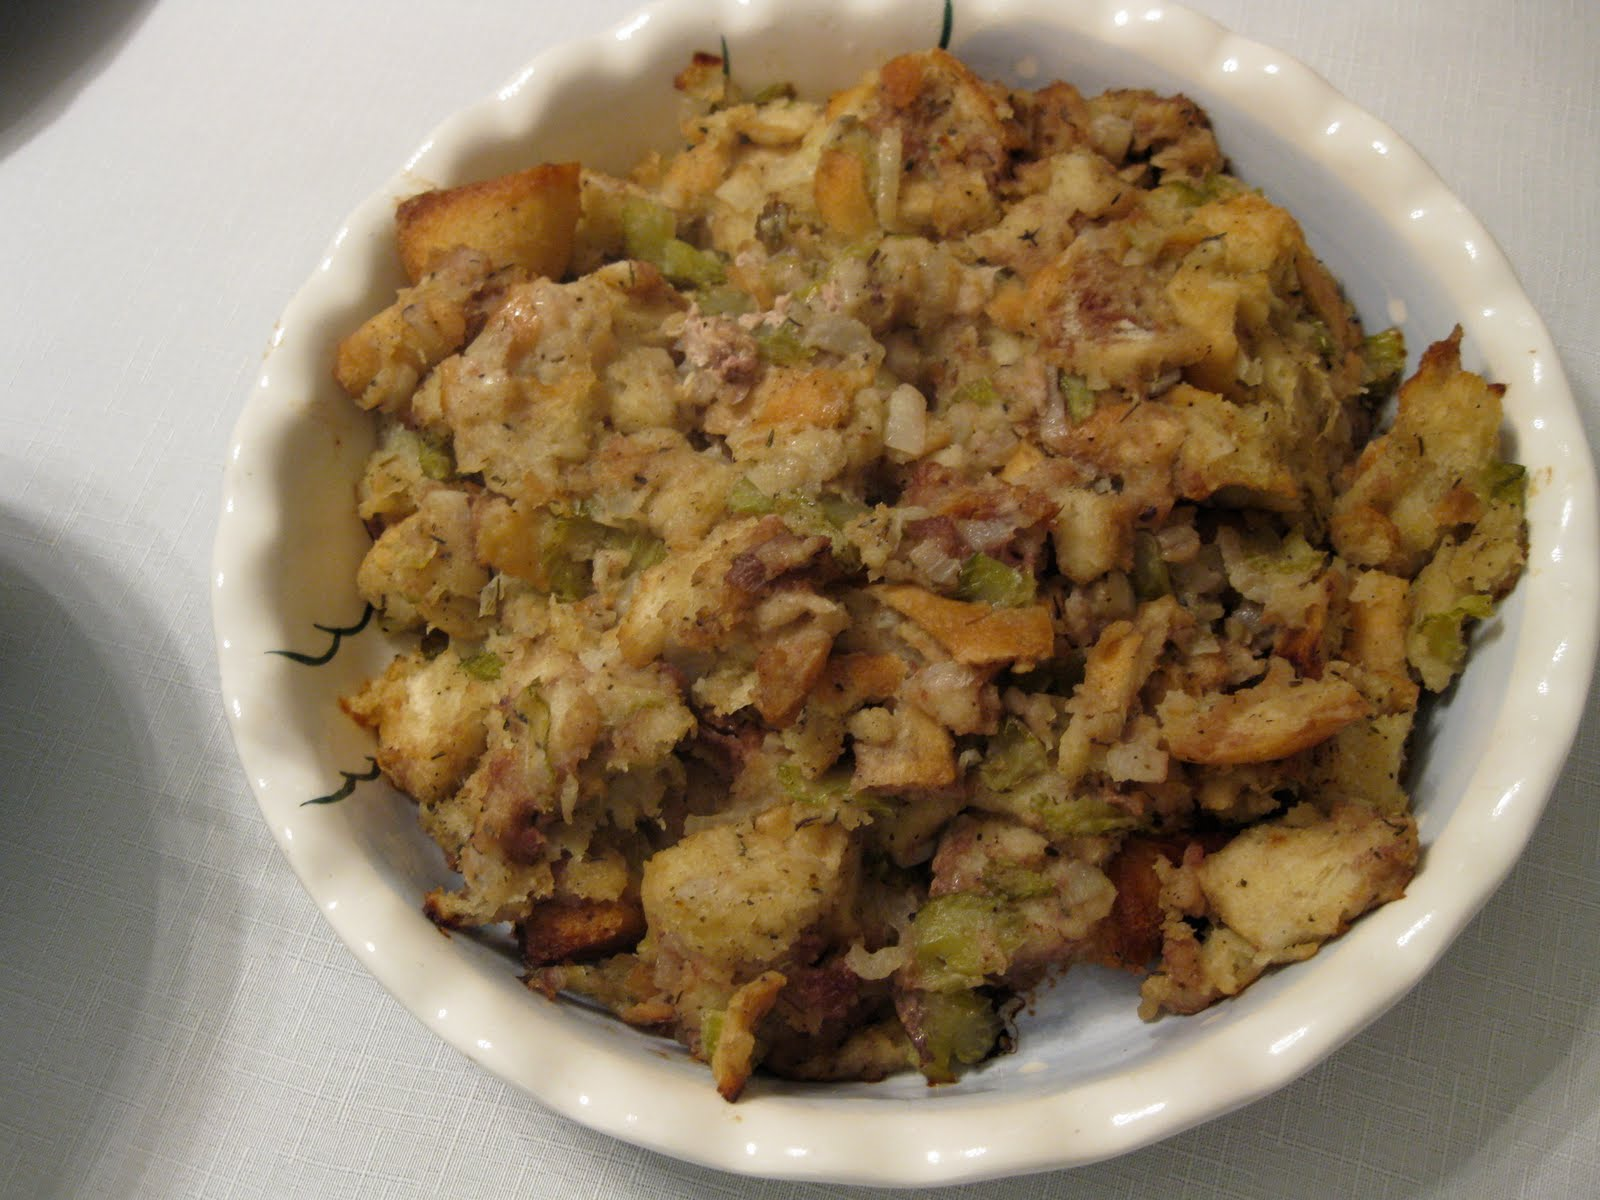 The Gourmet Project: Herbed Bread Stuffing (Page 378)